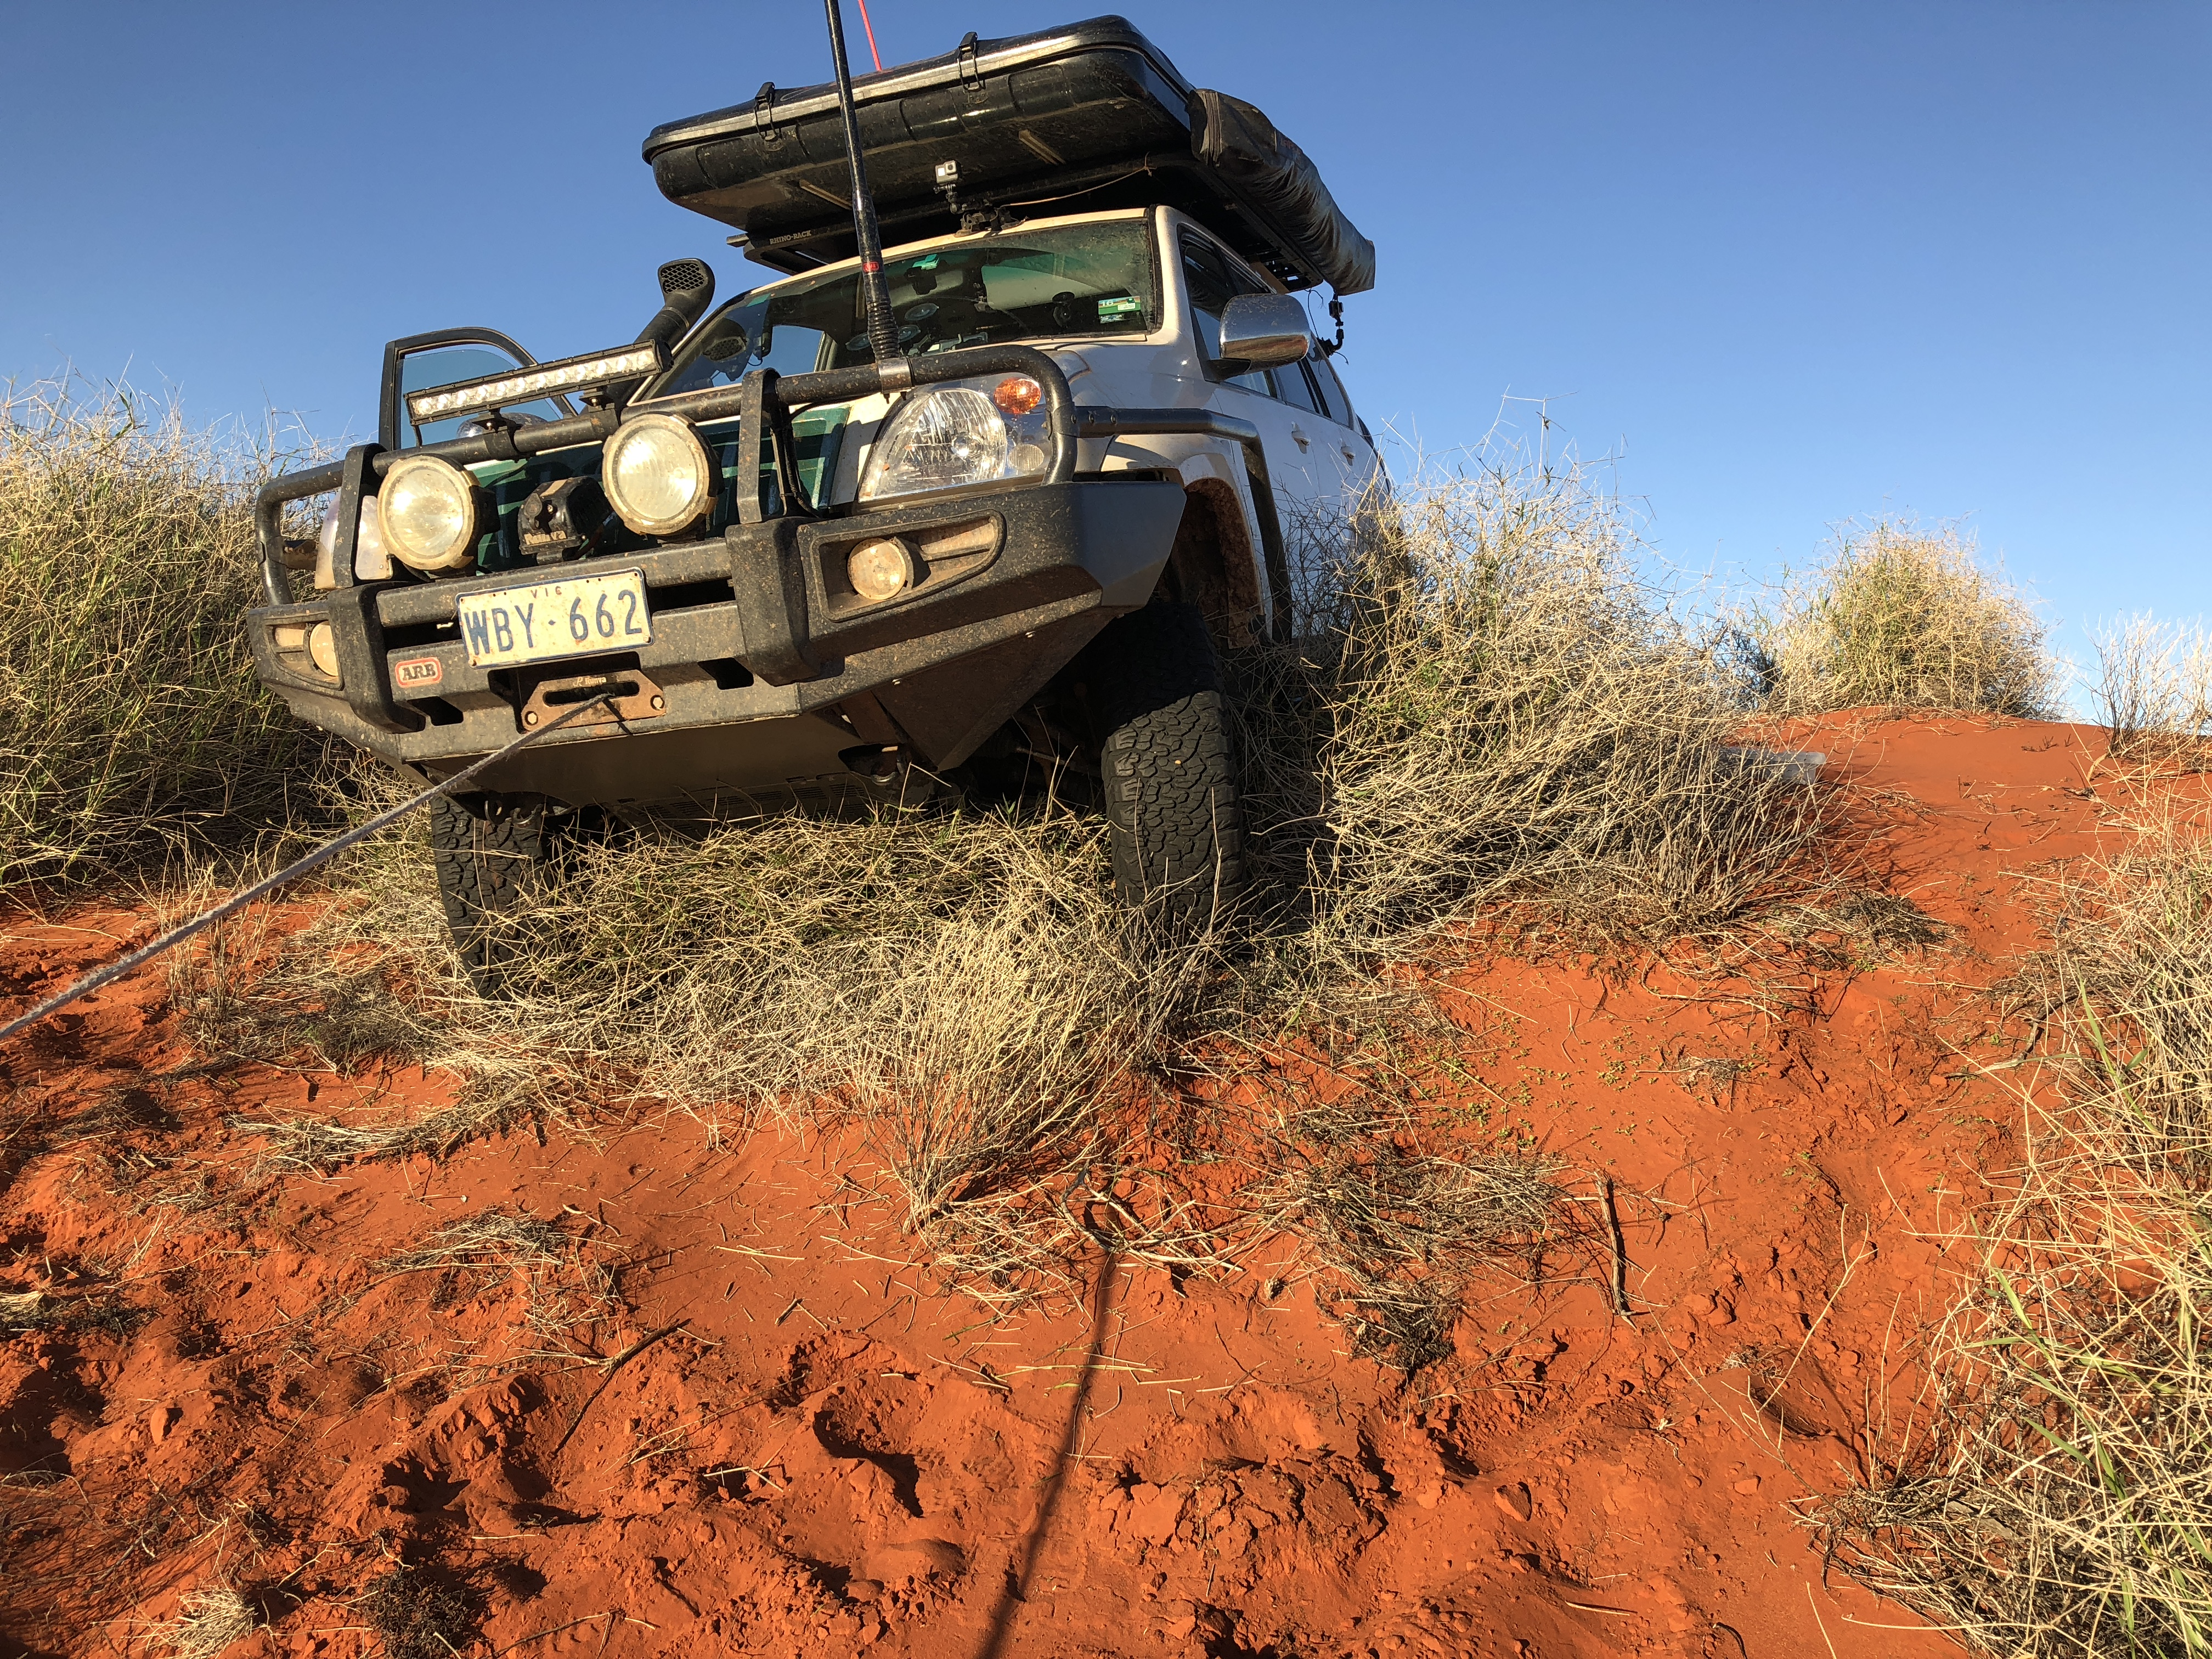 06 - Stuck on Spinifex moutn while corssing a dune.JPG